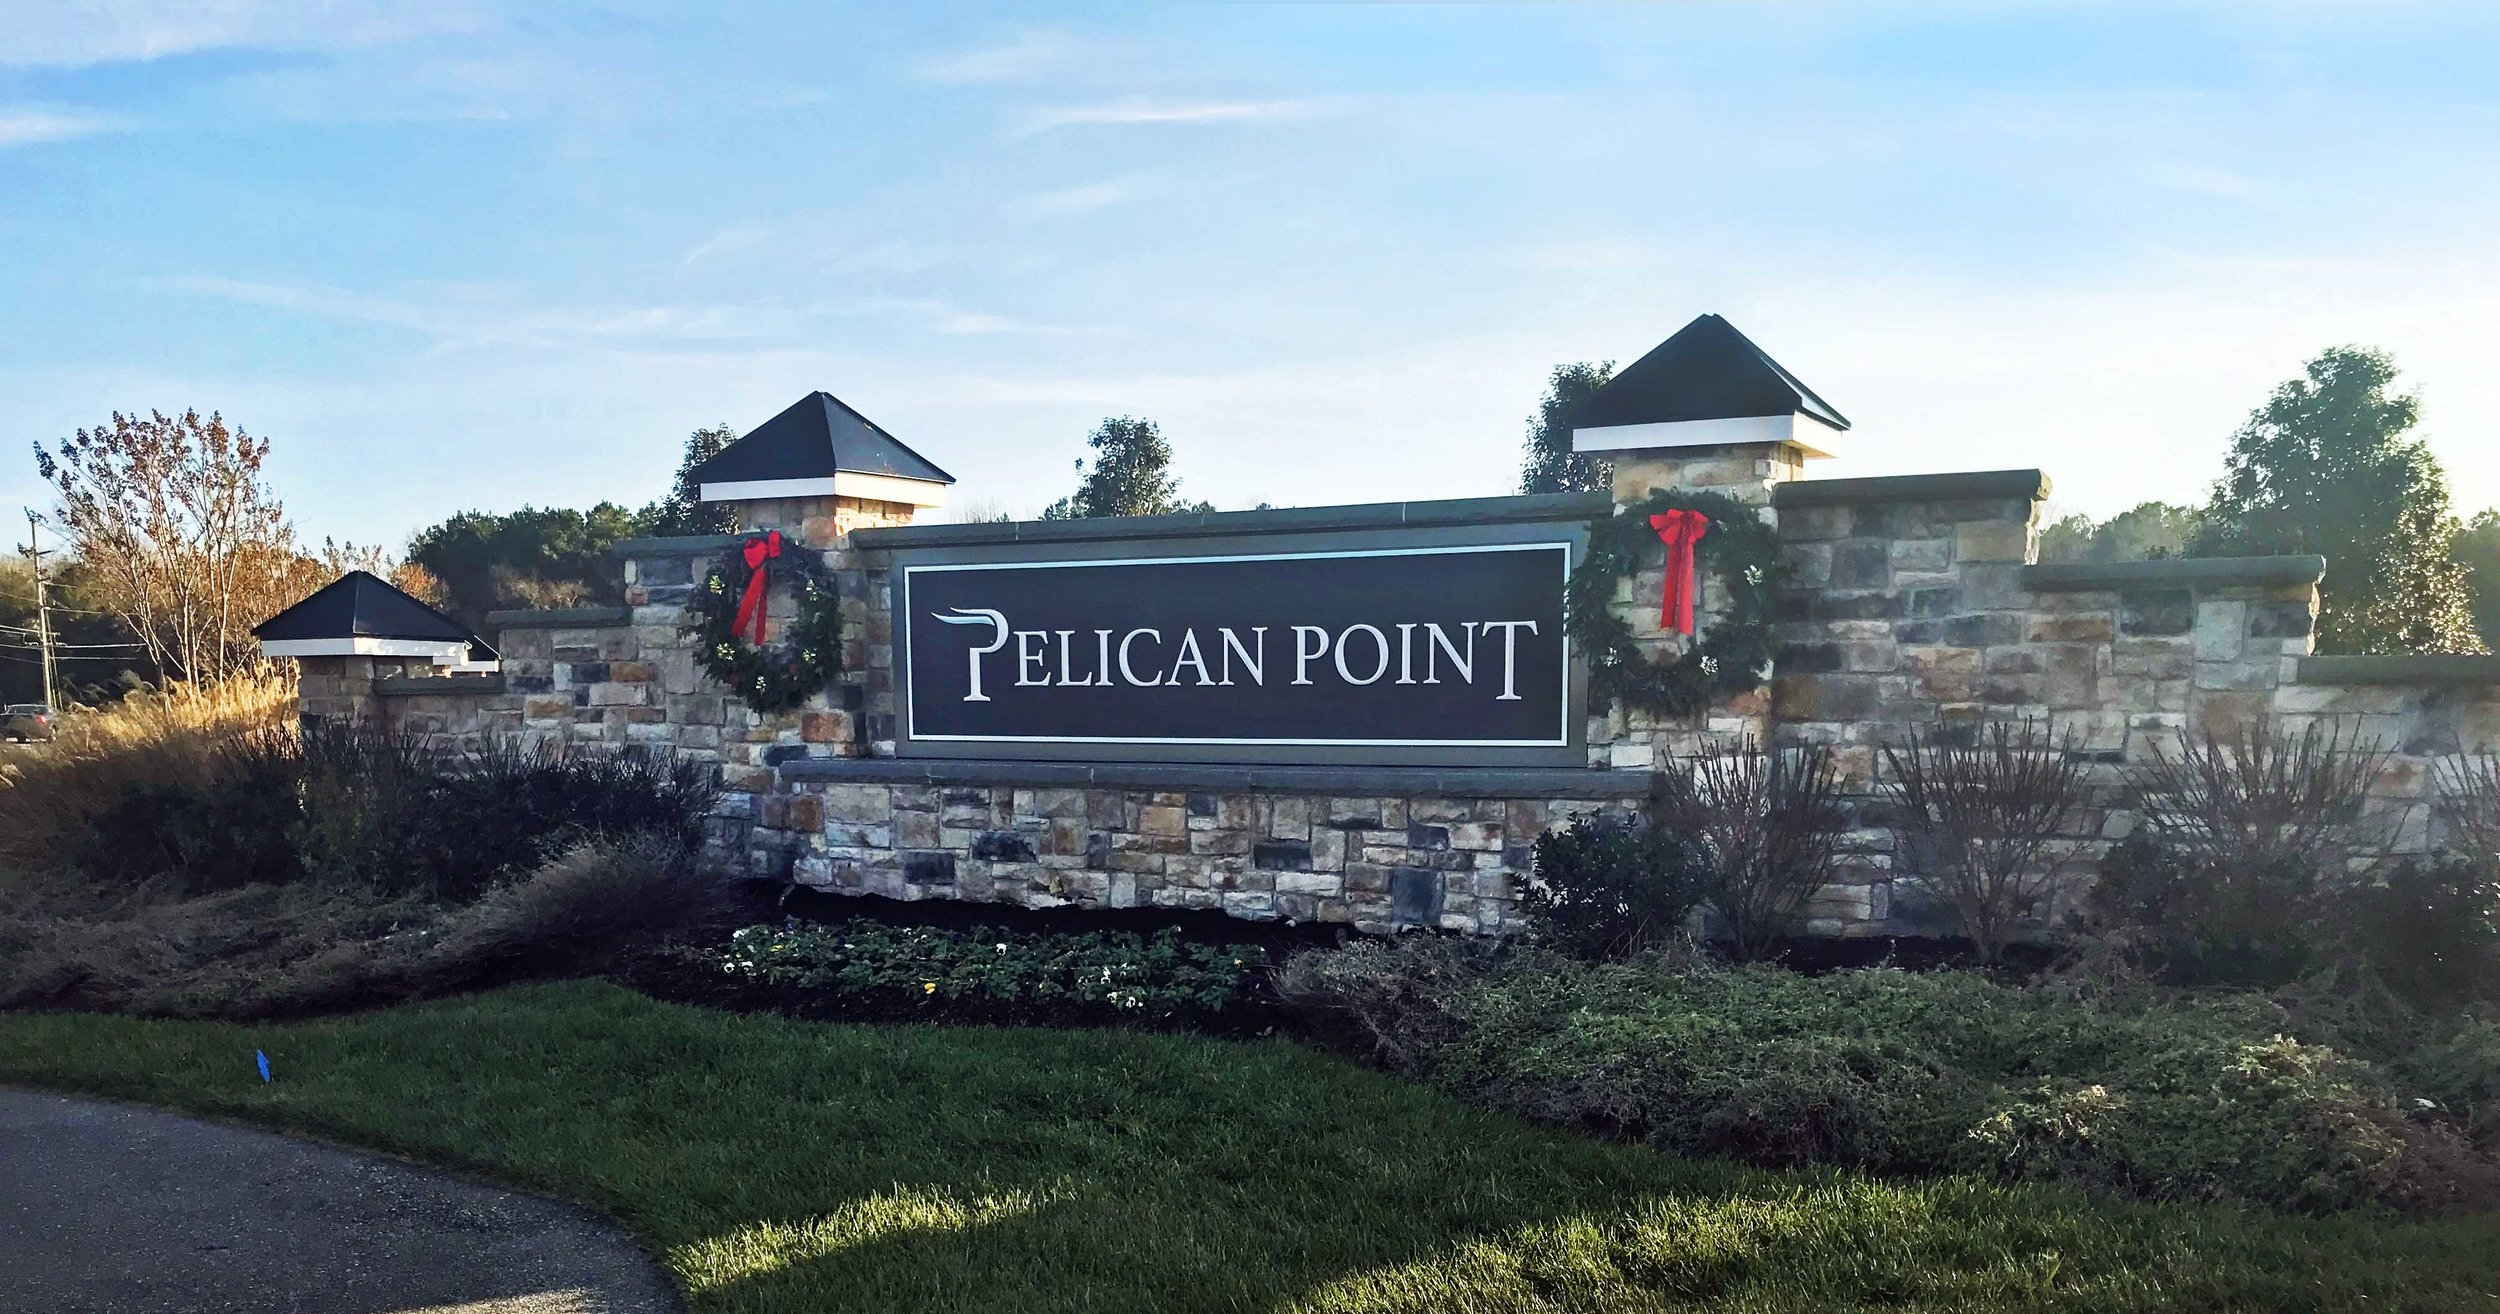 PELICAN POINT  - Sussex County, Delaware